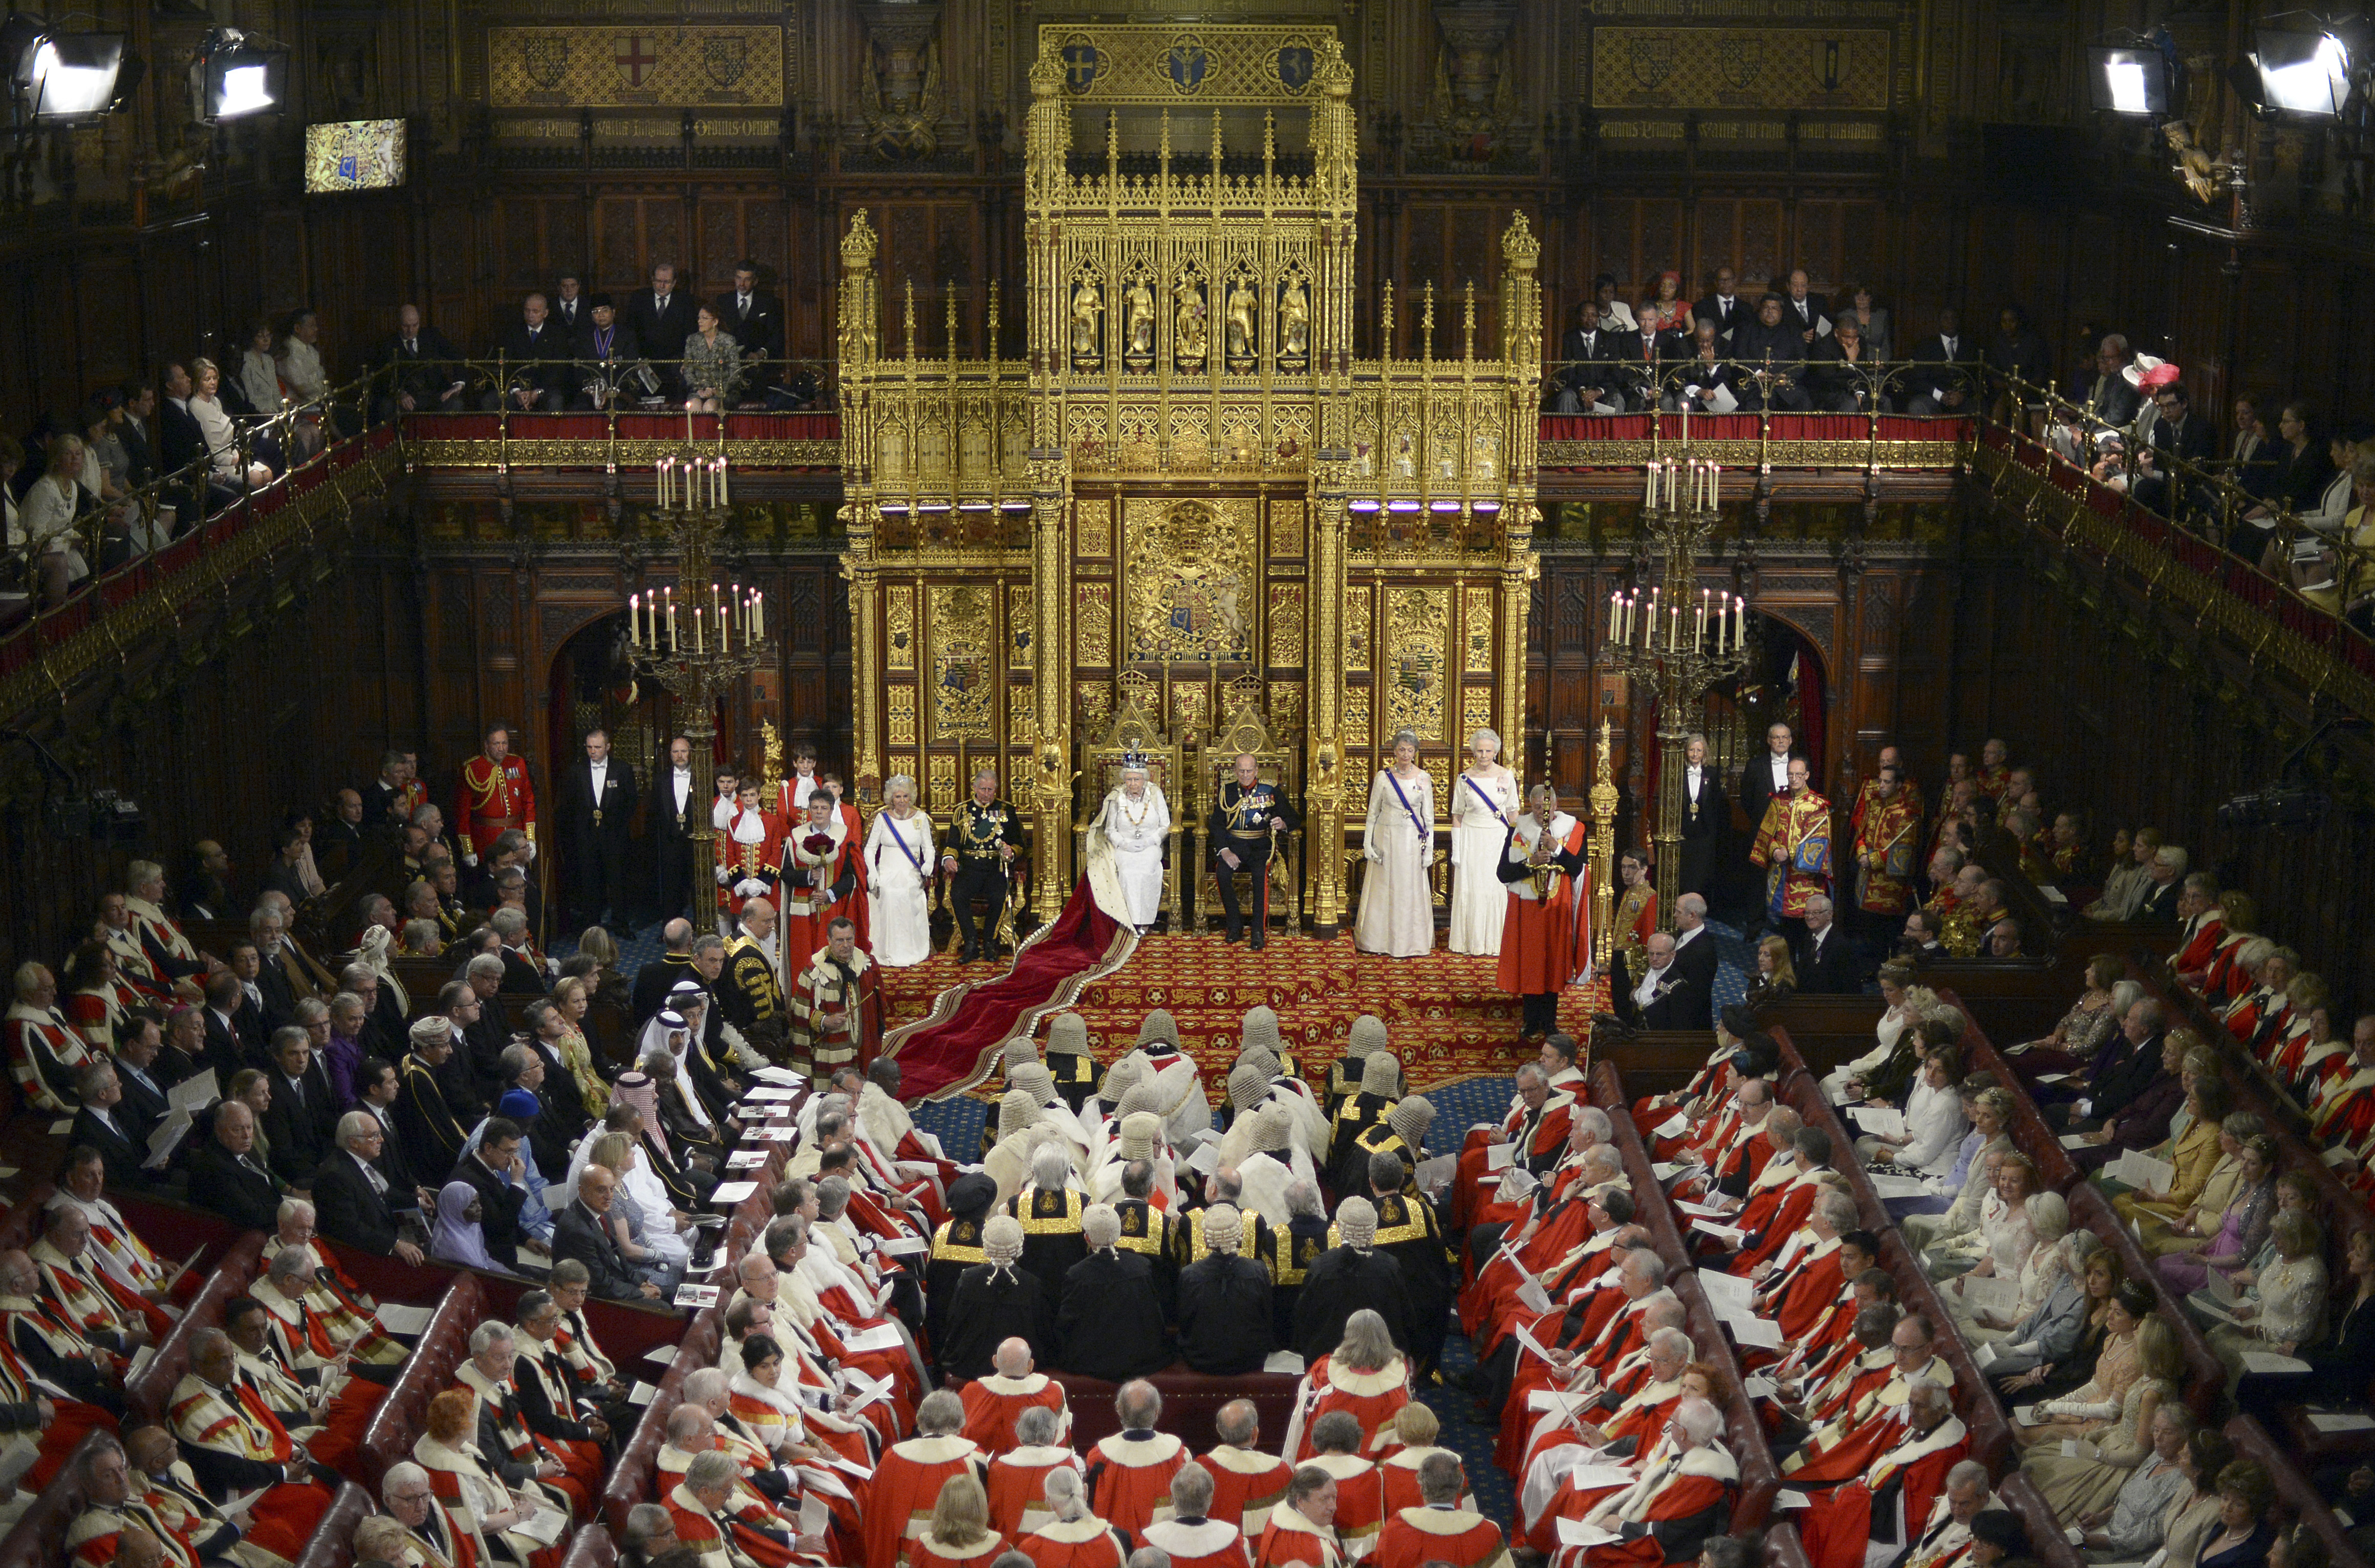 Queen Elizabeth II prepares to deliver her speech in the House of Lords during the State Opening of Parliament at the Palace of Westminster in London Wednesday, June 4, 2014.